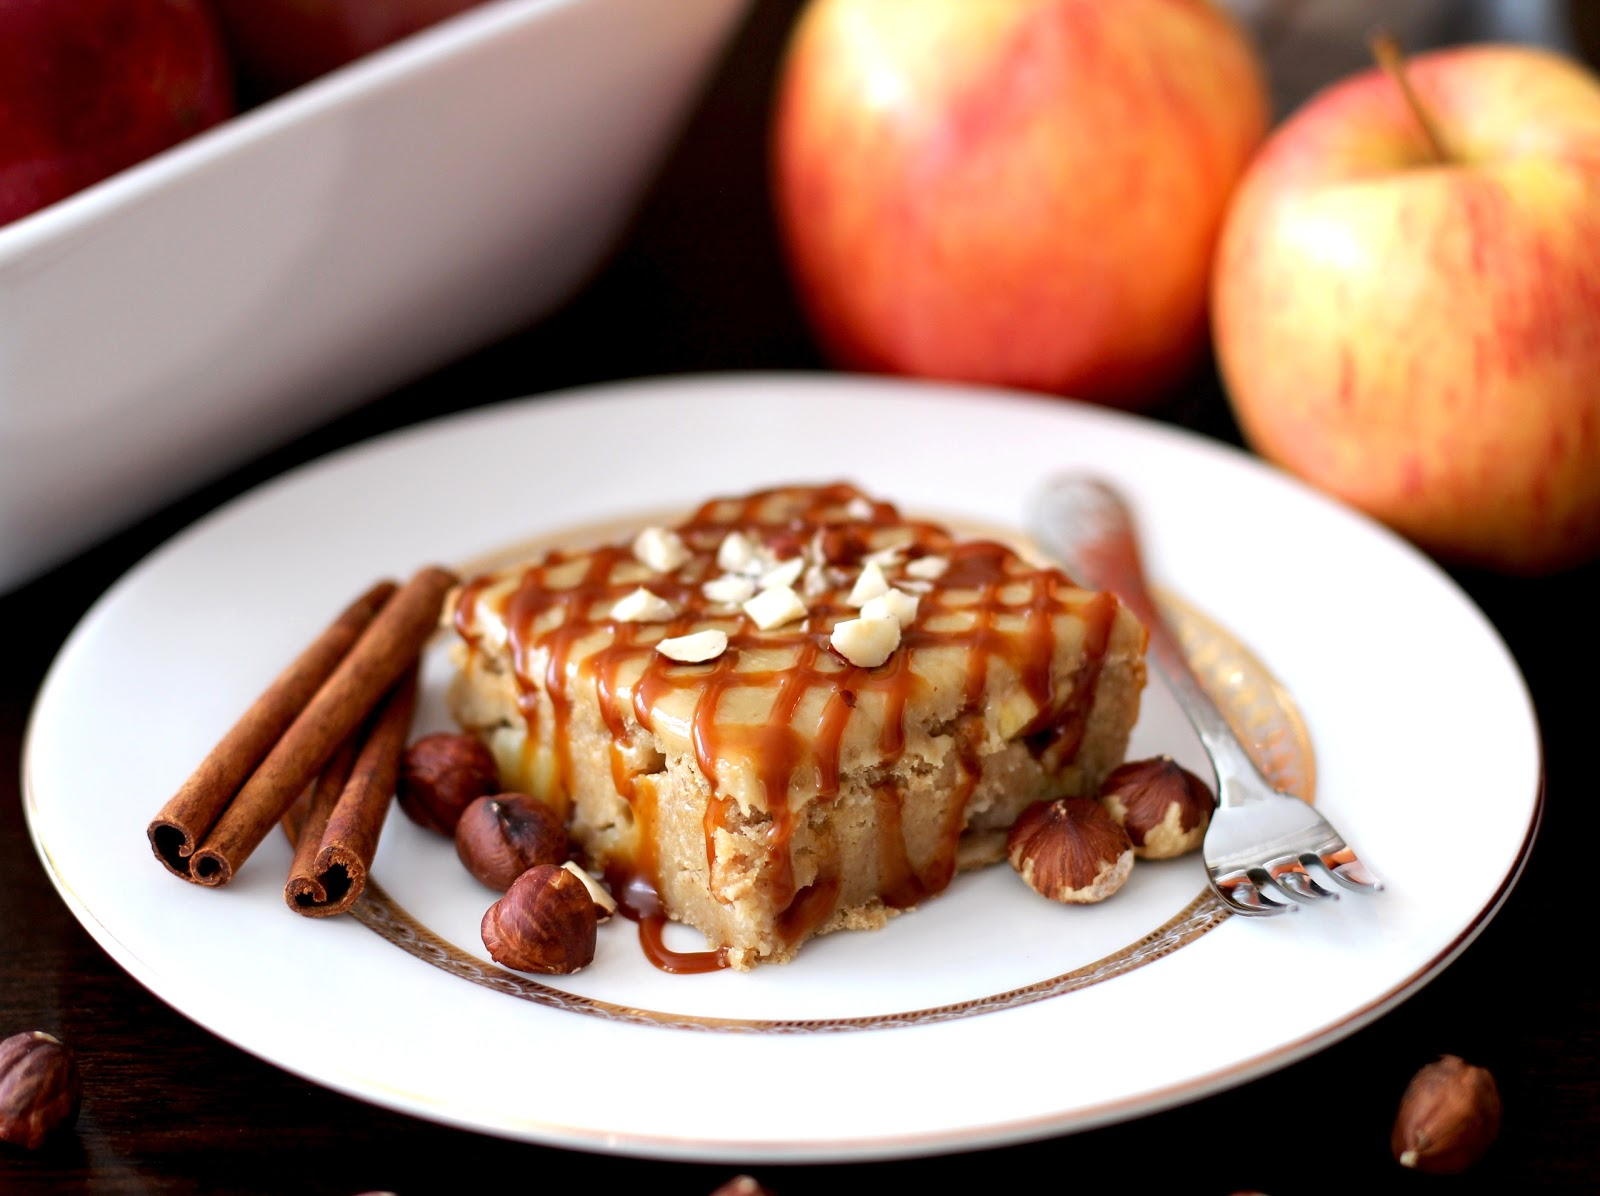 Healthy Apple Pie Blondies with a Brown Sugar Frosting and Caramel Drizzle (low sugar, gluten free, vegan)